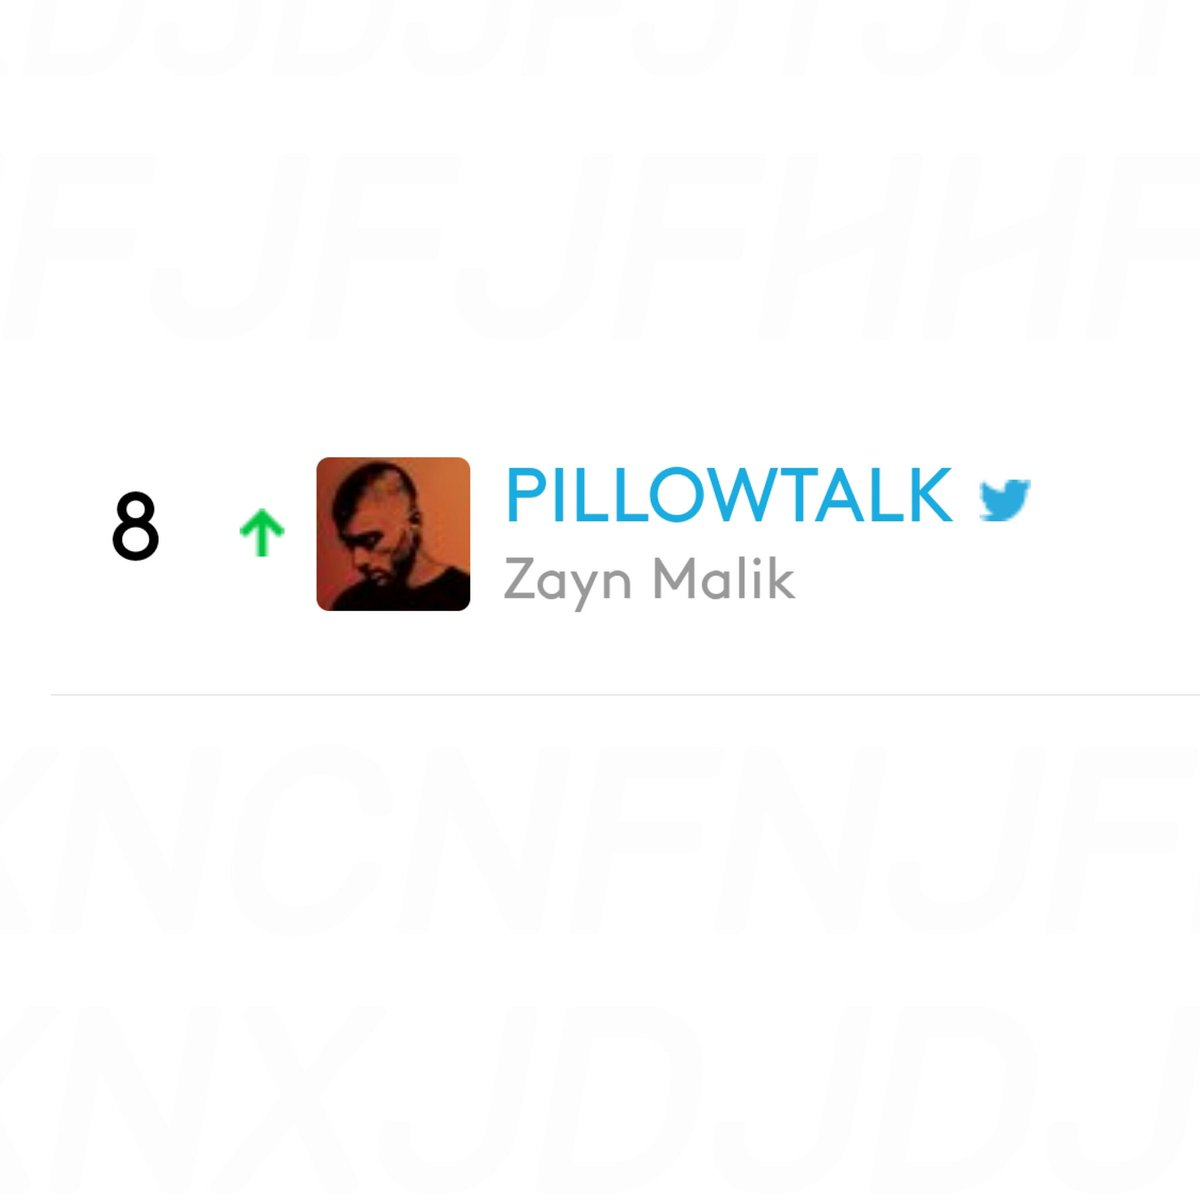 #PILLOWTALK is currently #8 on &#39;Billboard&#39;s Trending 140&#39;. <br>http://pic.twitter.com/pNJCtRTkN1